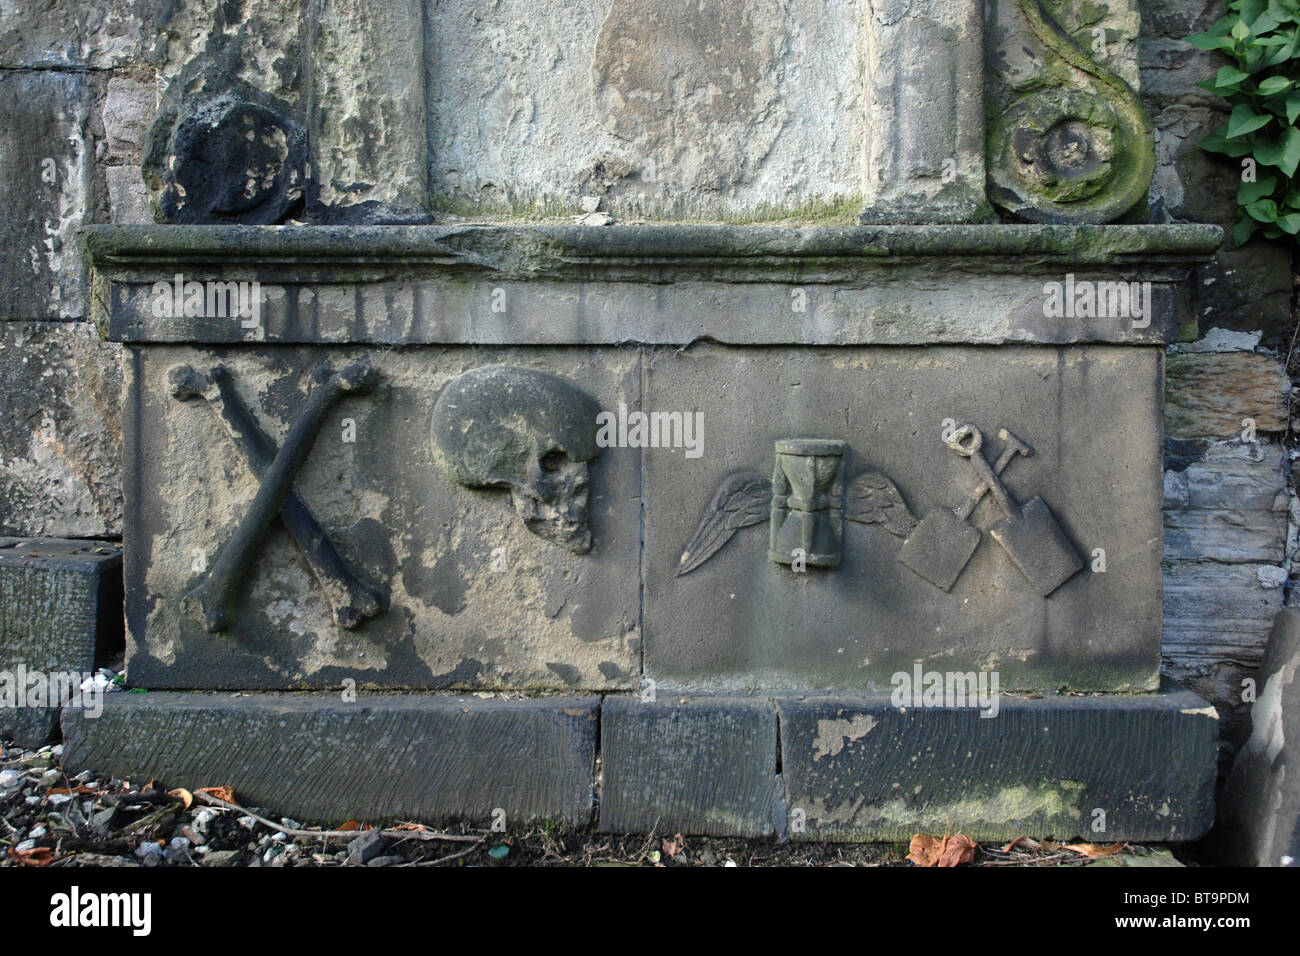 Weathered memorial with various symbols in Old Calton Burial Ground, Edinburgh, Scotland, UK - Stock Image